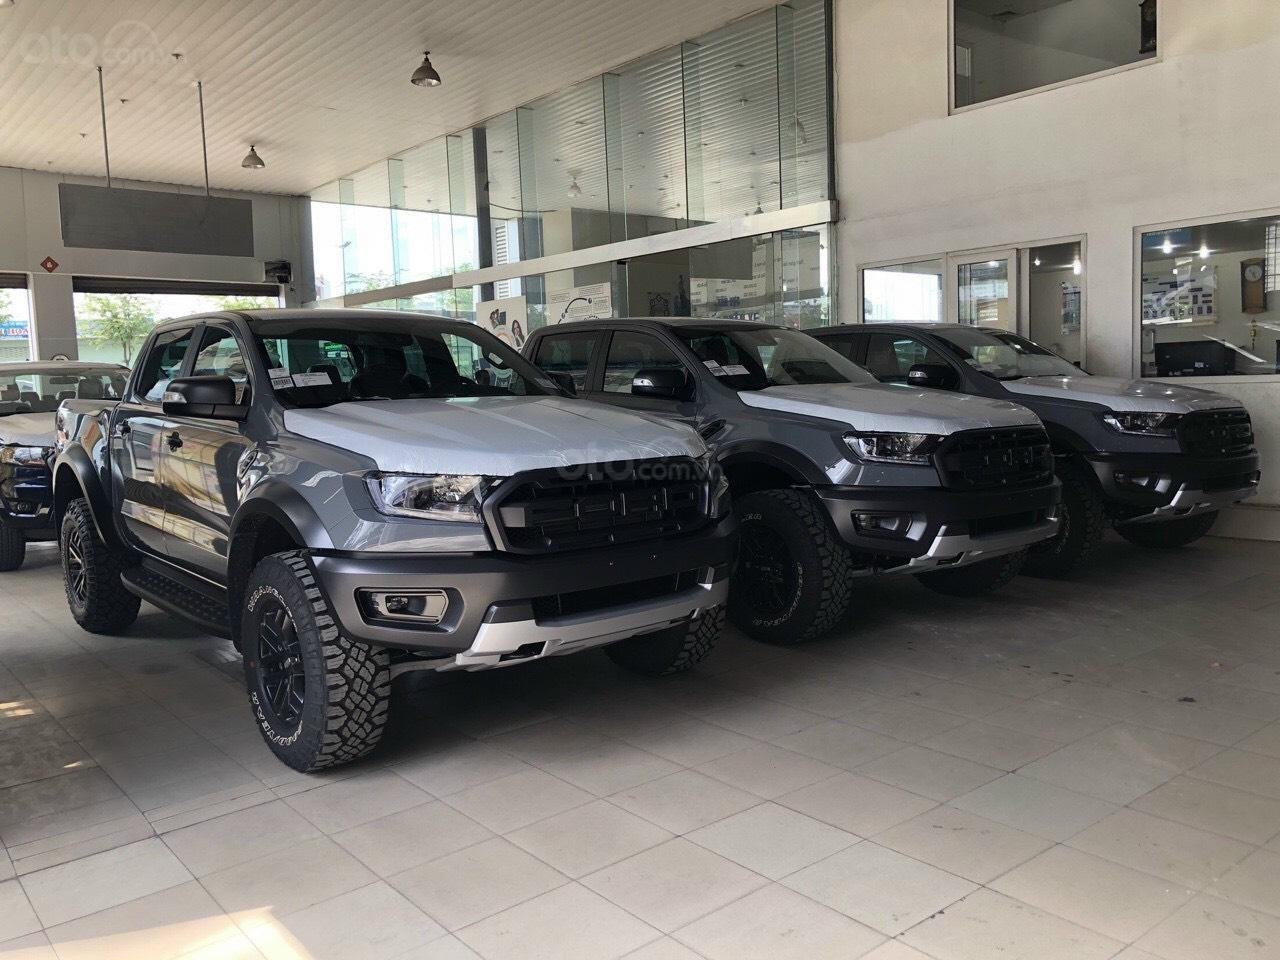 Western Ford An Giang (9)